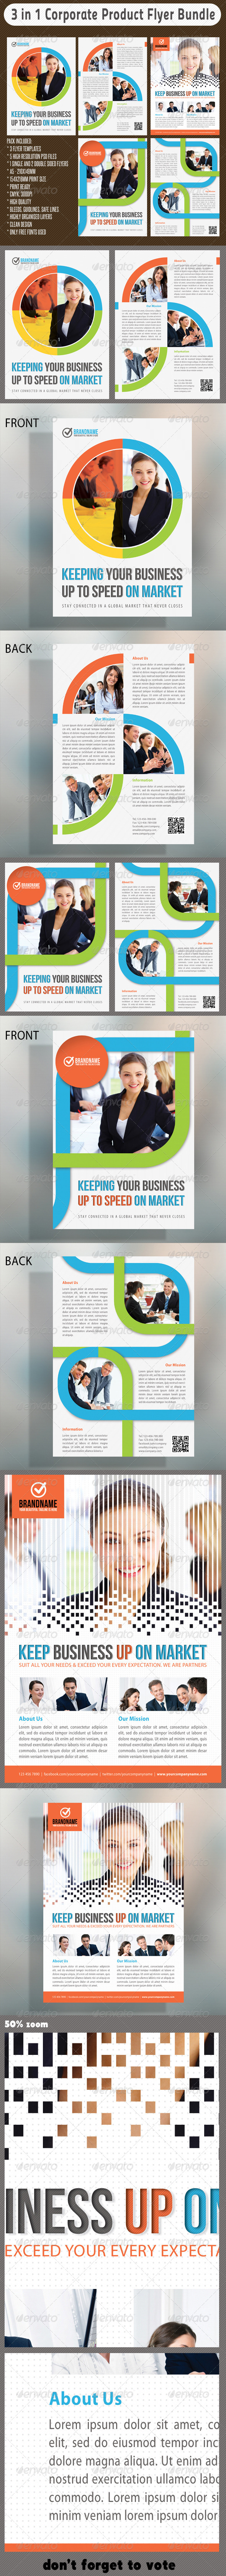 3 in 1 Corporate Flyers Bundle 03 - Corporate Flyers